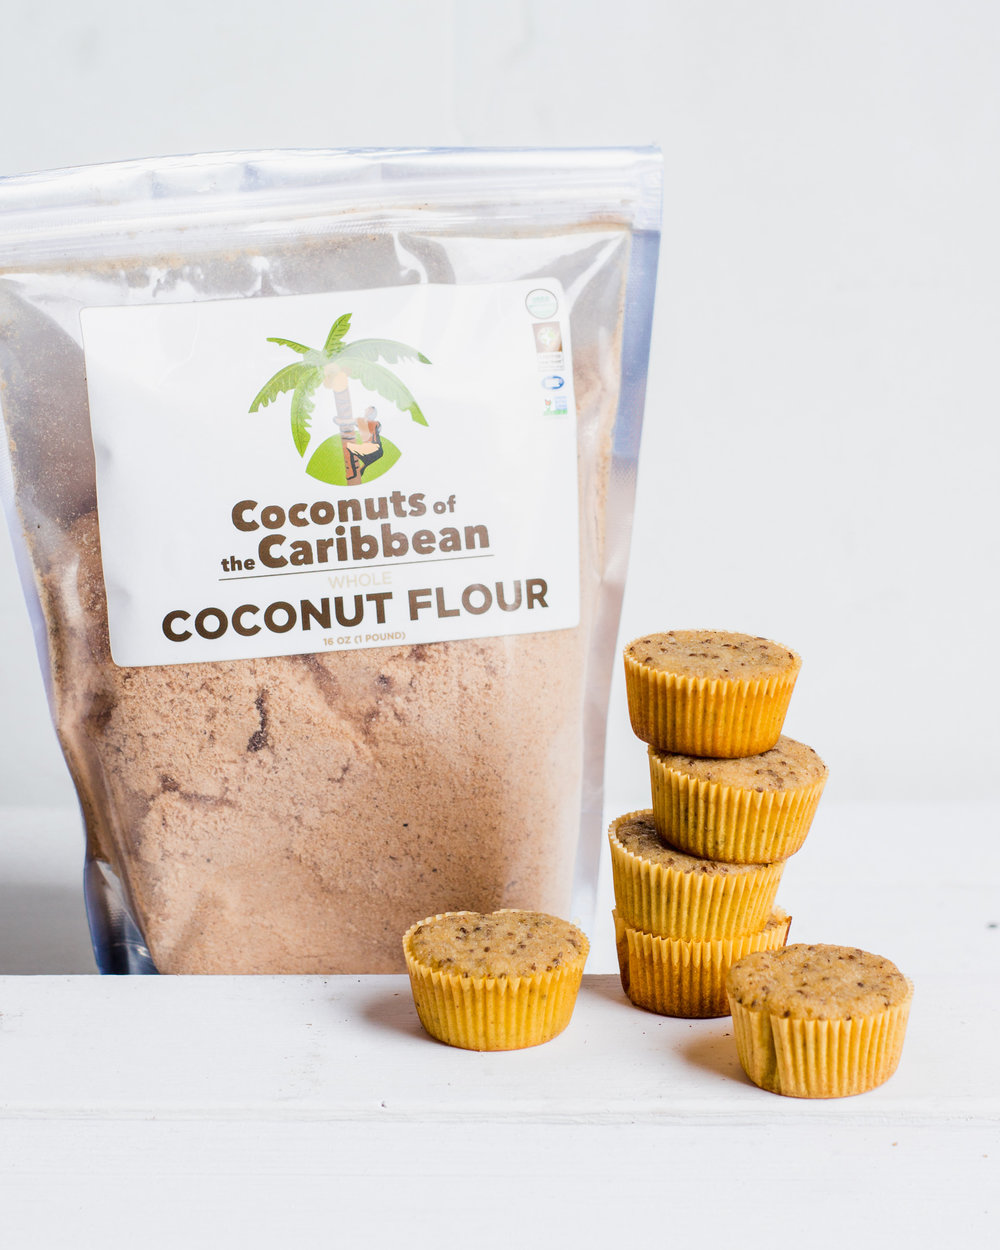 Healthy Lemon Chia Seed Muffins Made With Our Coconut Flour!